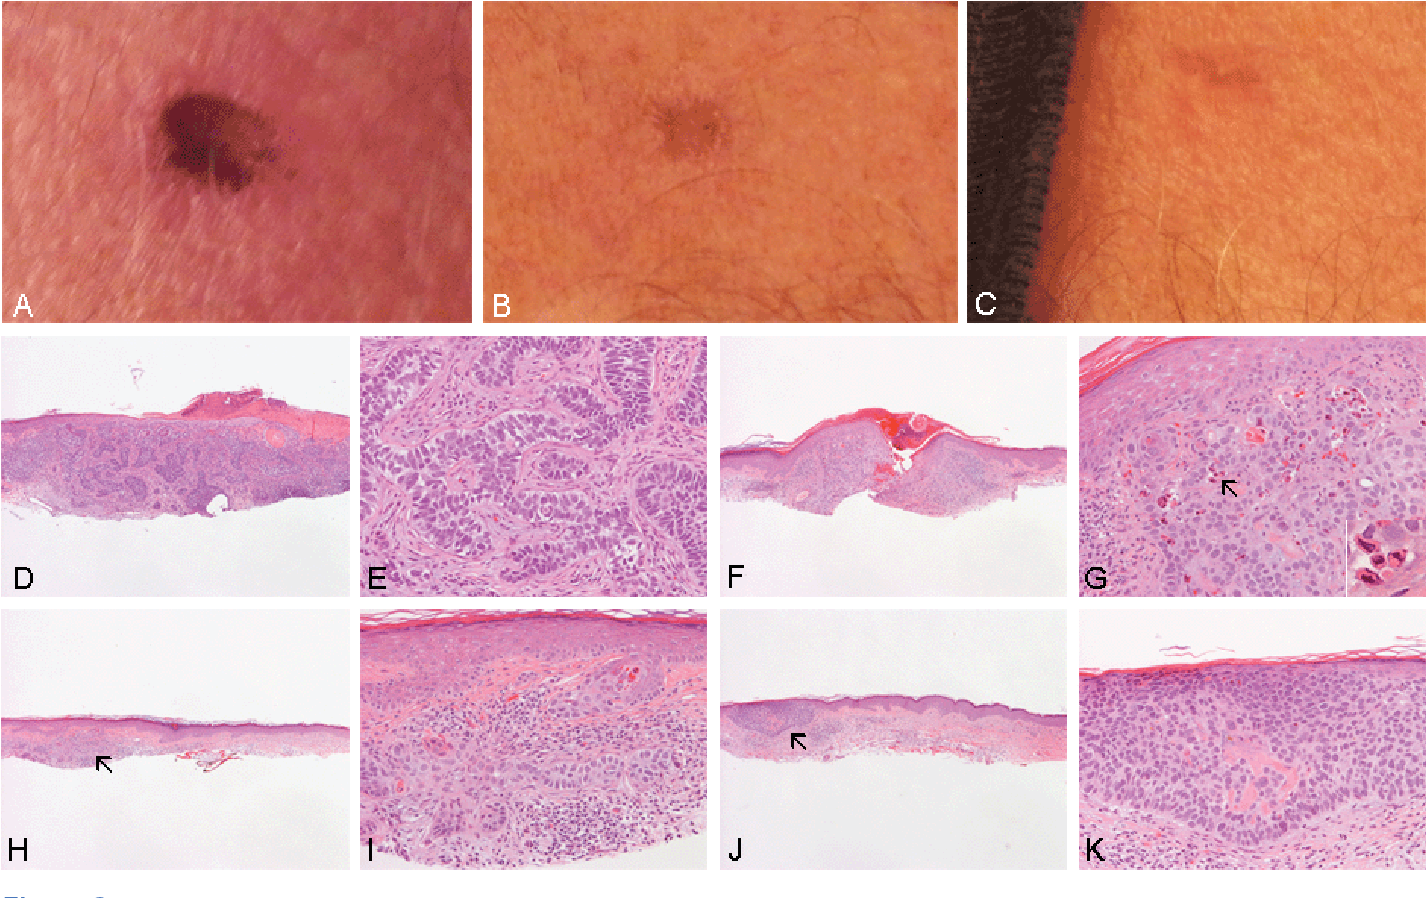 Pdf Management Of Basal Cell Carcinoma Of The Skin Using Frankincense Boswellia Sacra Essential Oil A Case Report Semantic Scholar